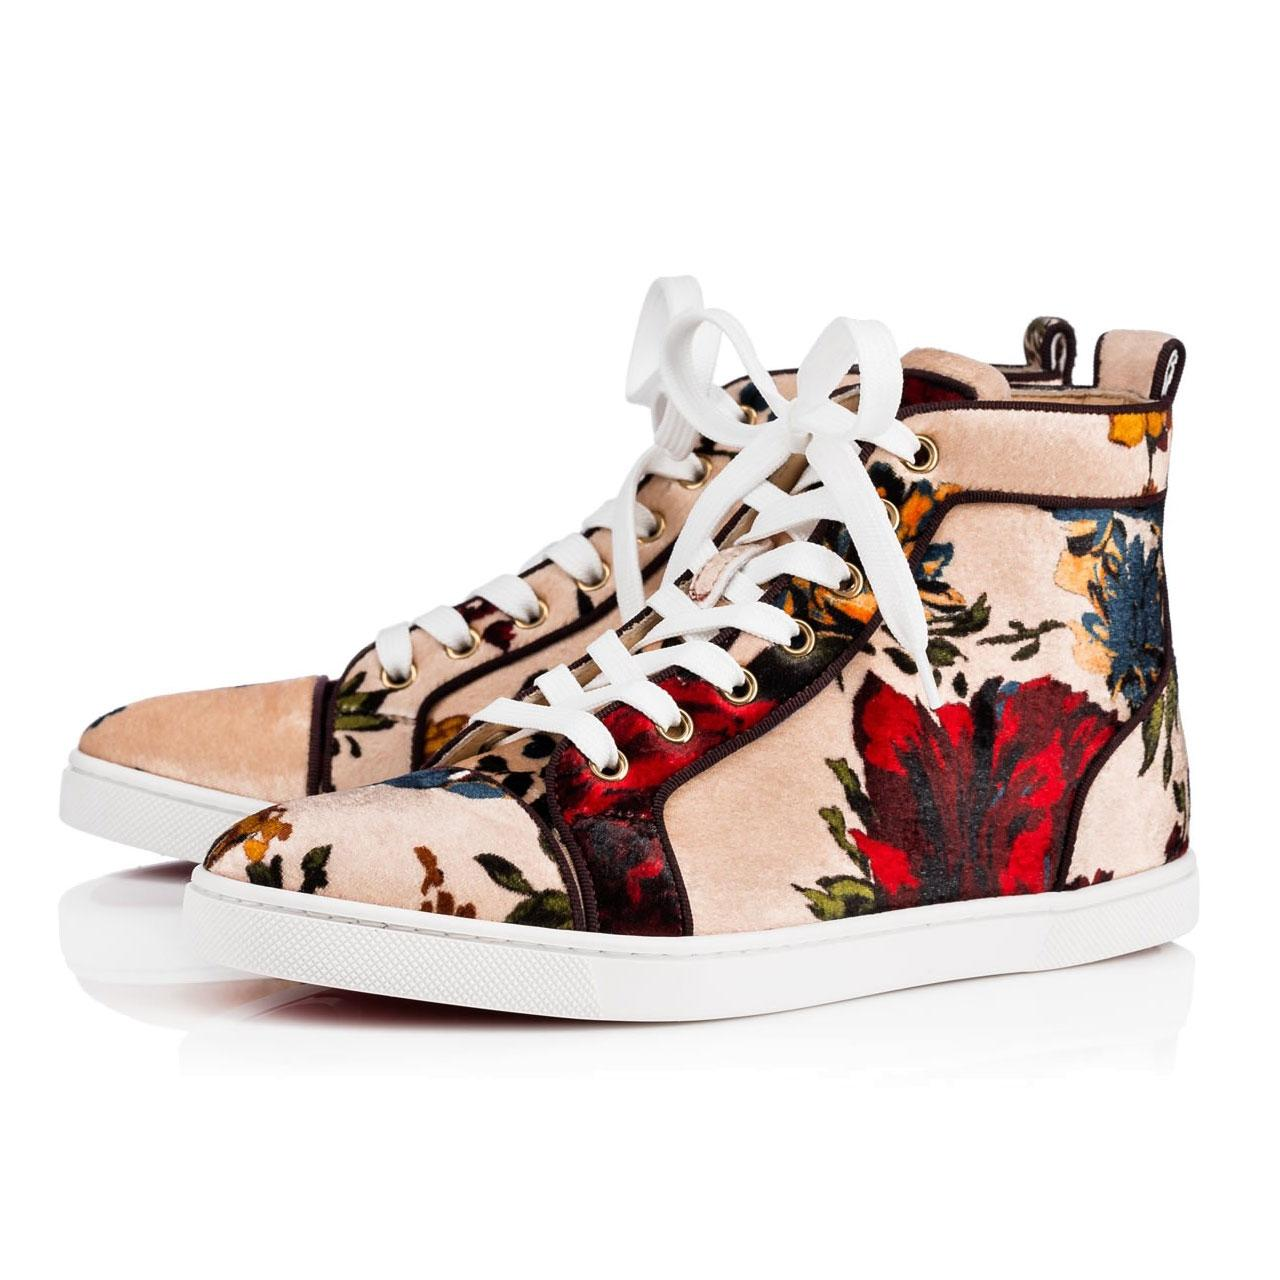 8e7e6748c Gucci Beige And Green Blooms Print Gg Canvas Low Top Sneakers. Christian  Louboutin Nude Bip Bip Orlato Floral Flat High Top Sneakers Sneakers Size  Eu 39 (